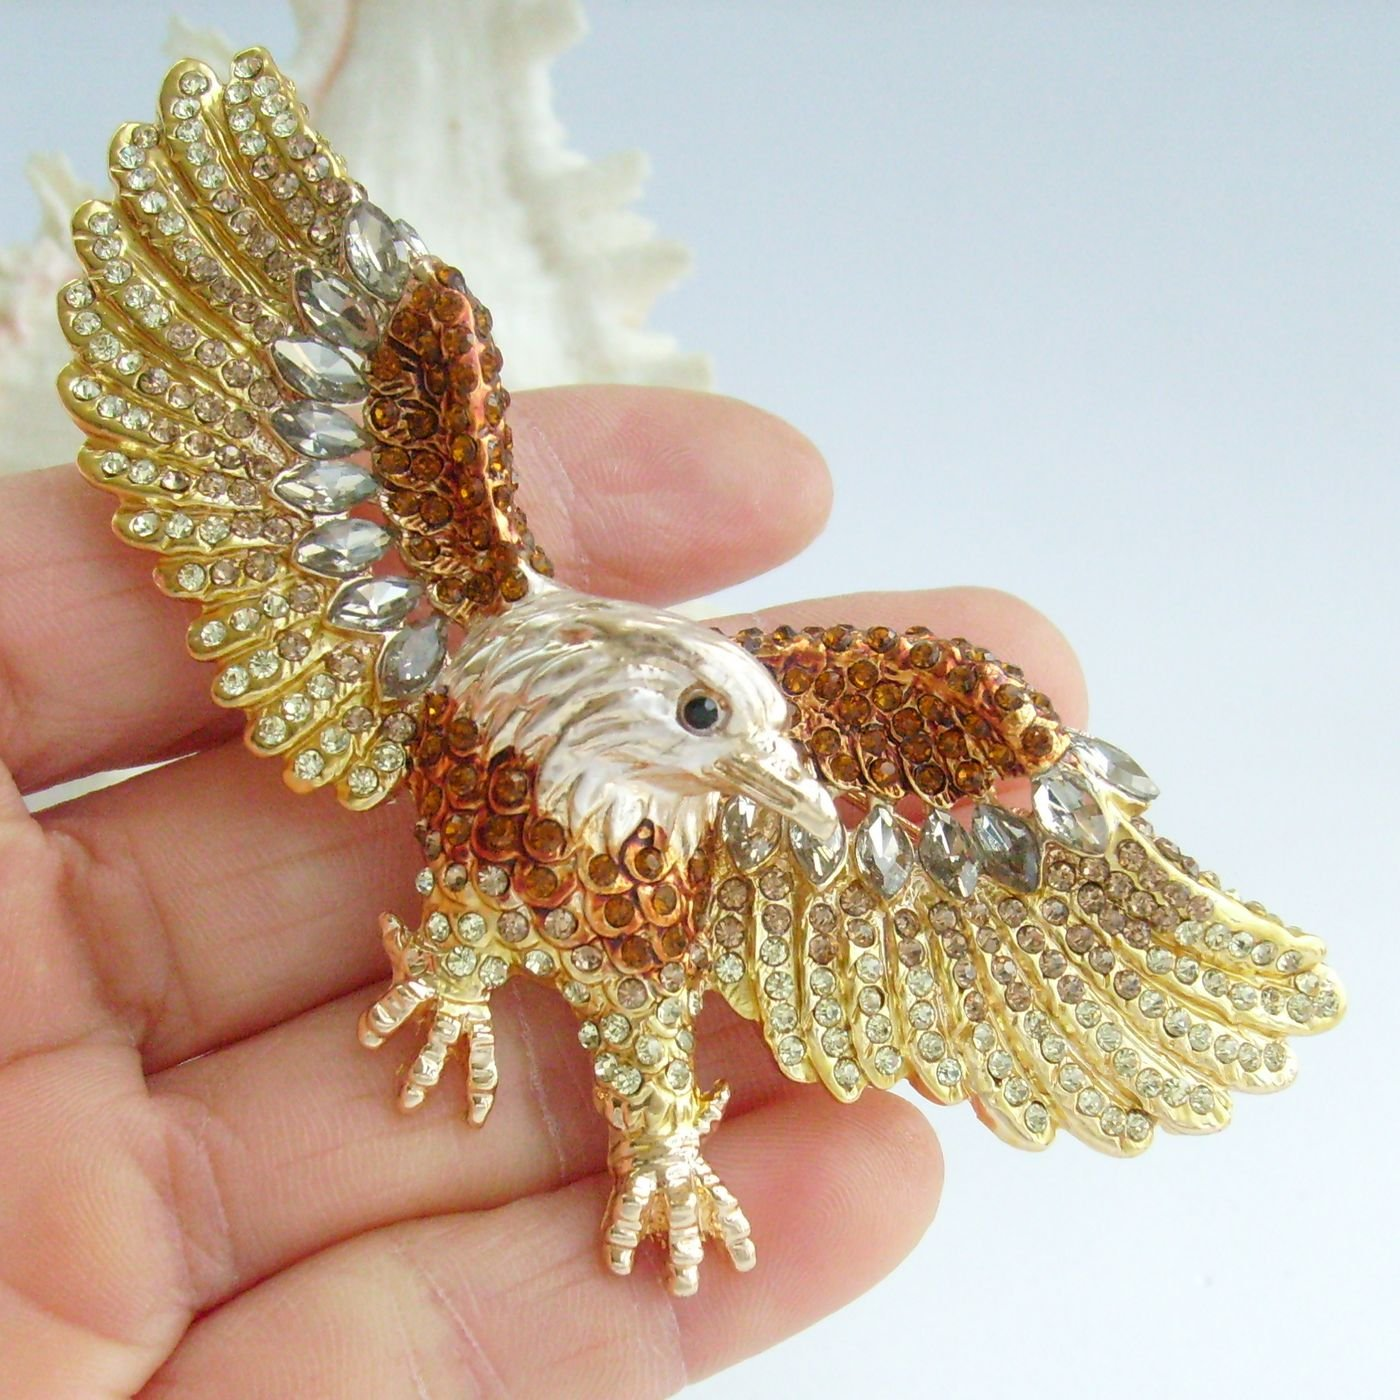 Sindary Unique 3.15'' Eagle Brooch Pin Rhinestone Crystal Pendant BZ4717 (Gold-Tone Brown) by Animal Brooch-Sindary Jewelry (Image #2)